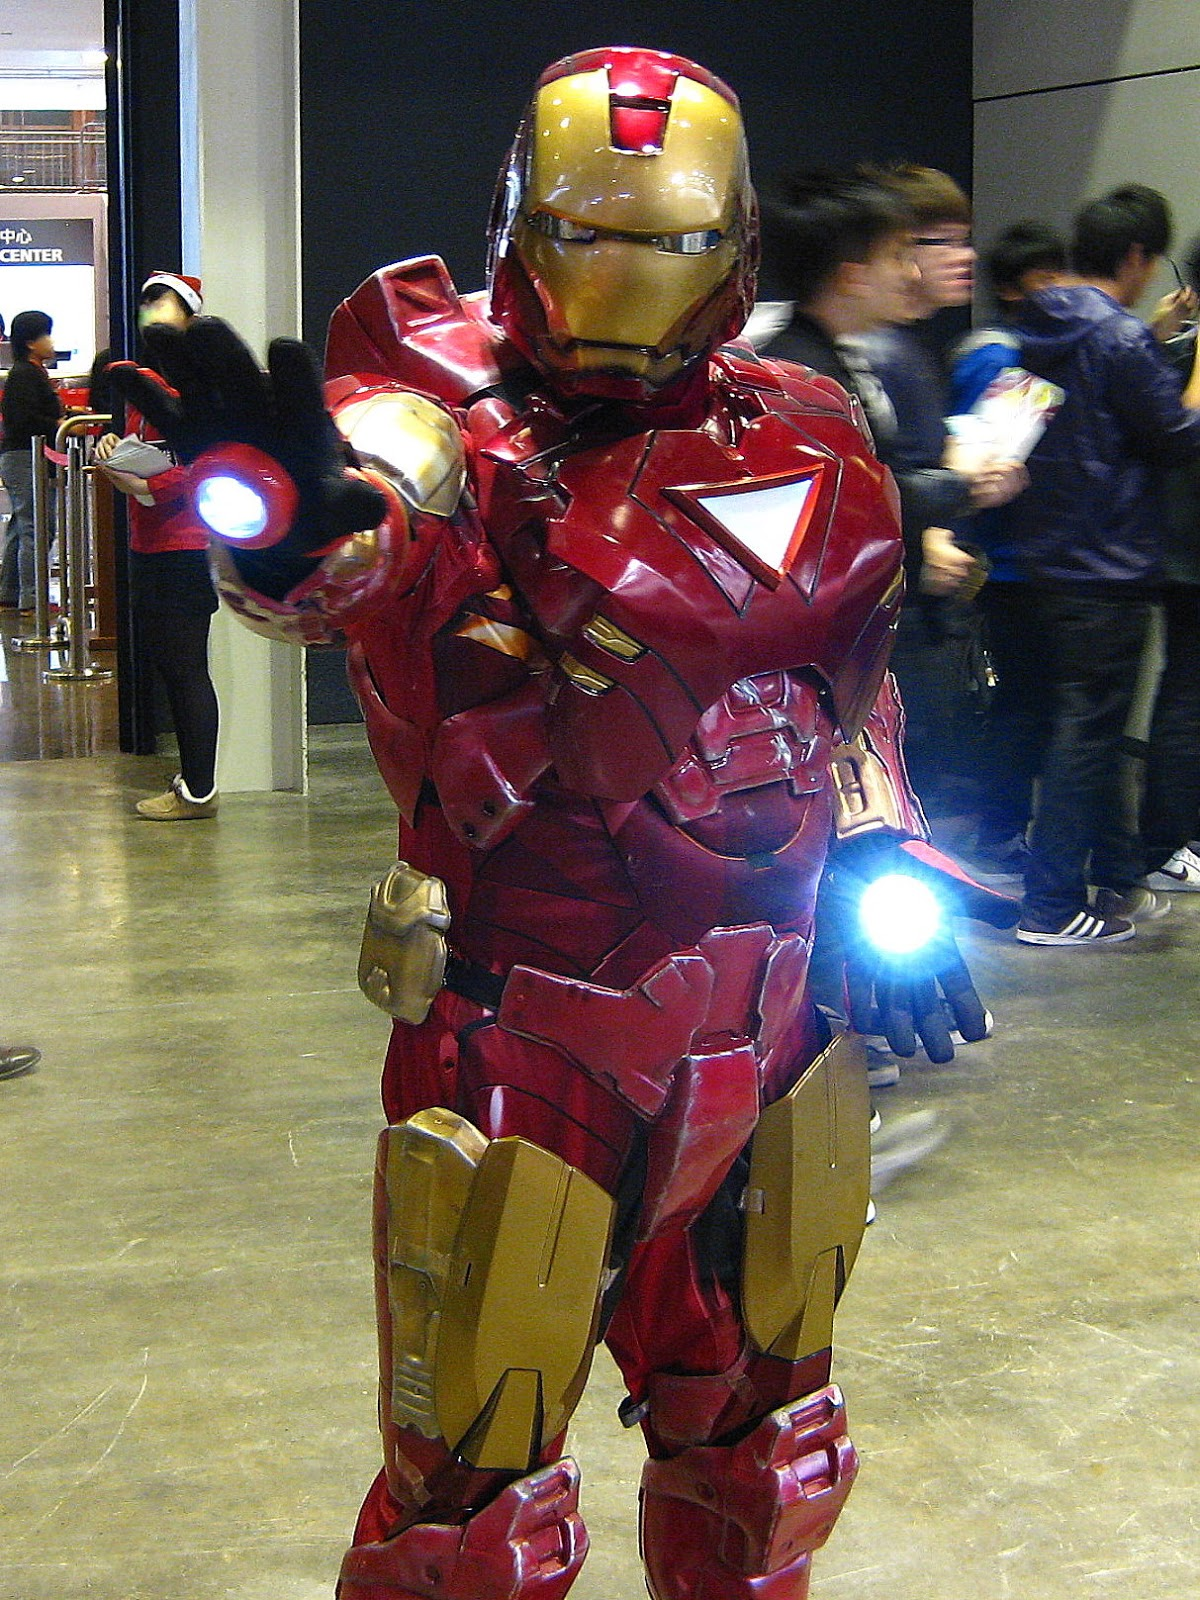 Iron Man Cosplay at Asia Game Show 2010 (Video)